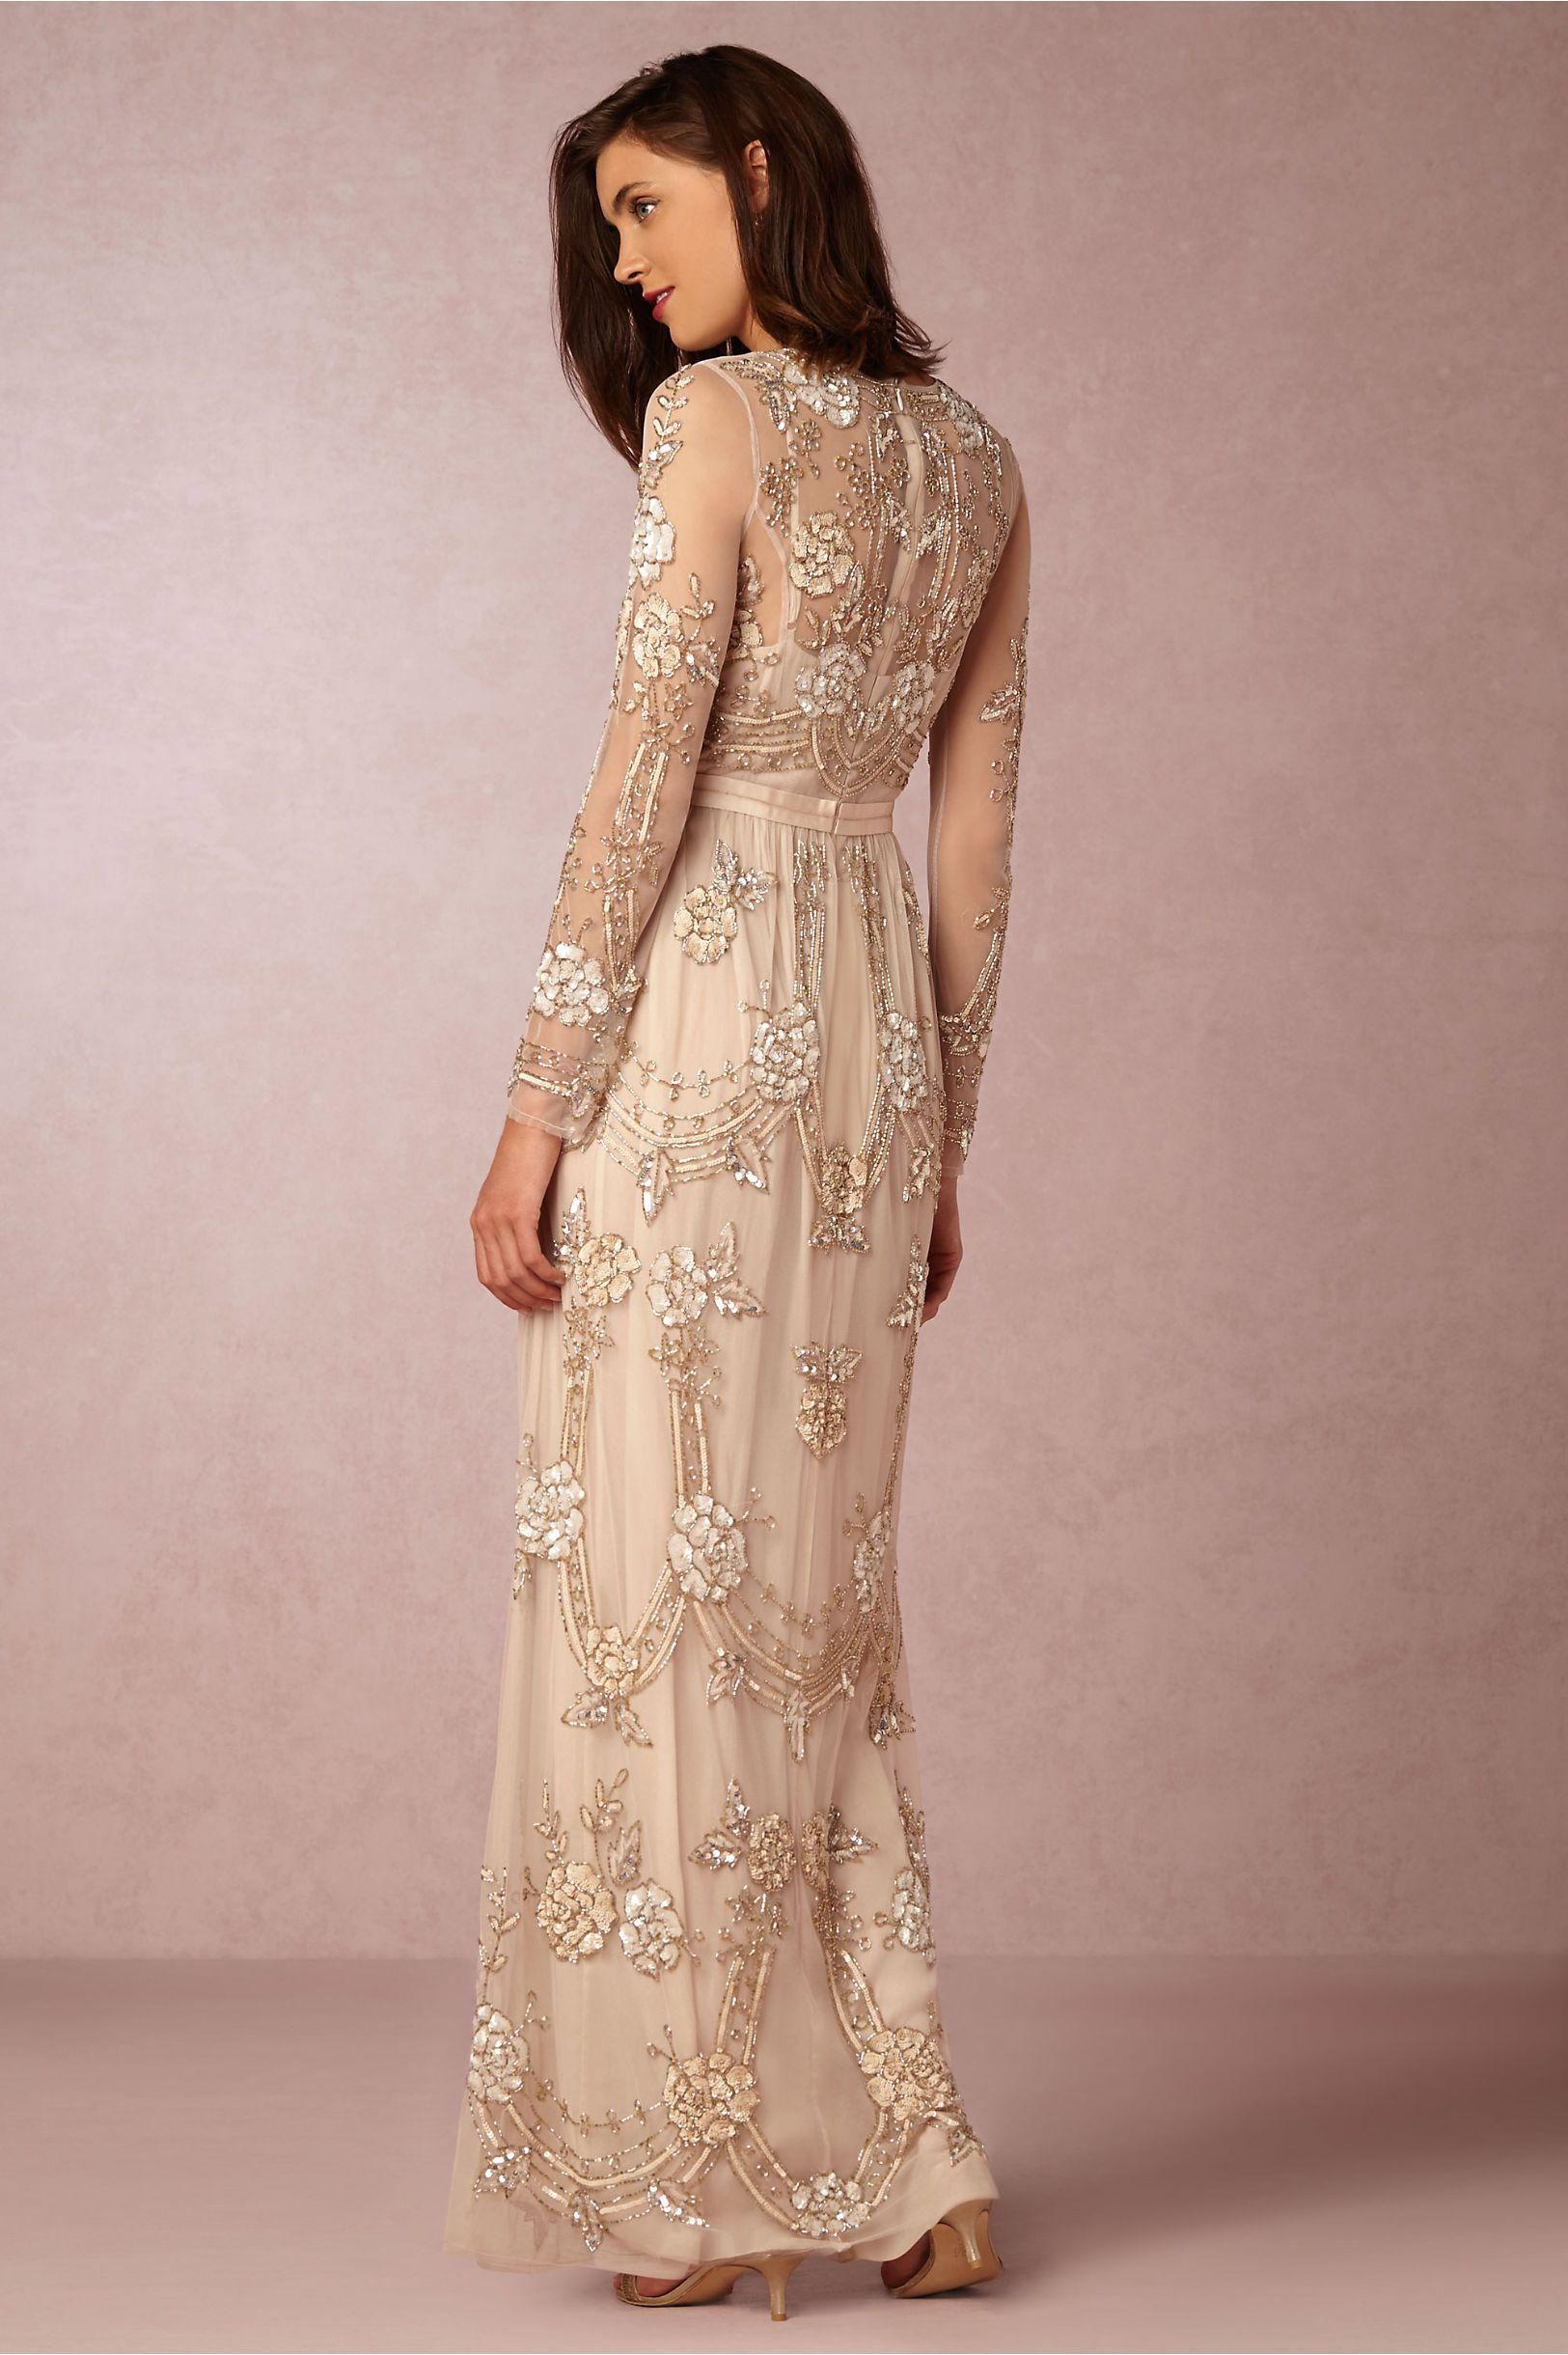 BHLDN Adona Dress in Bride Reception Dresses at BHLDN | Wedding ...